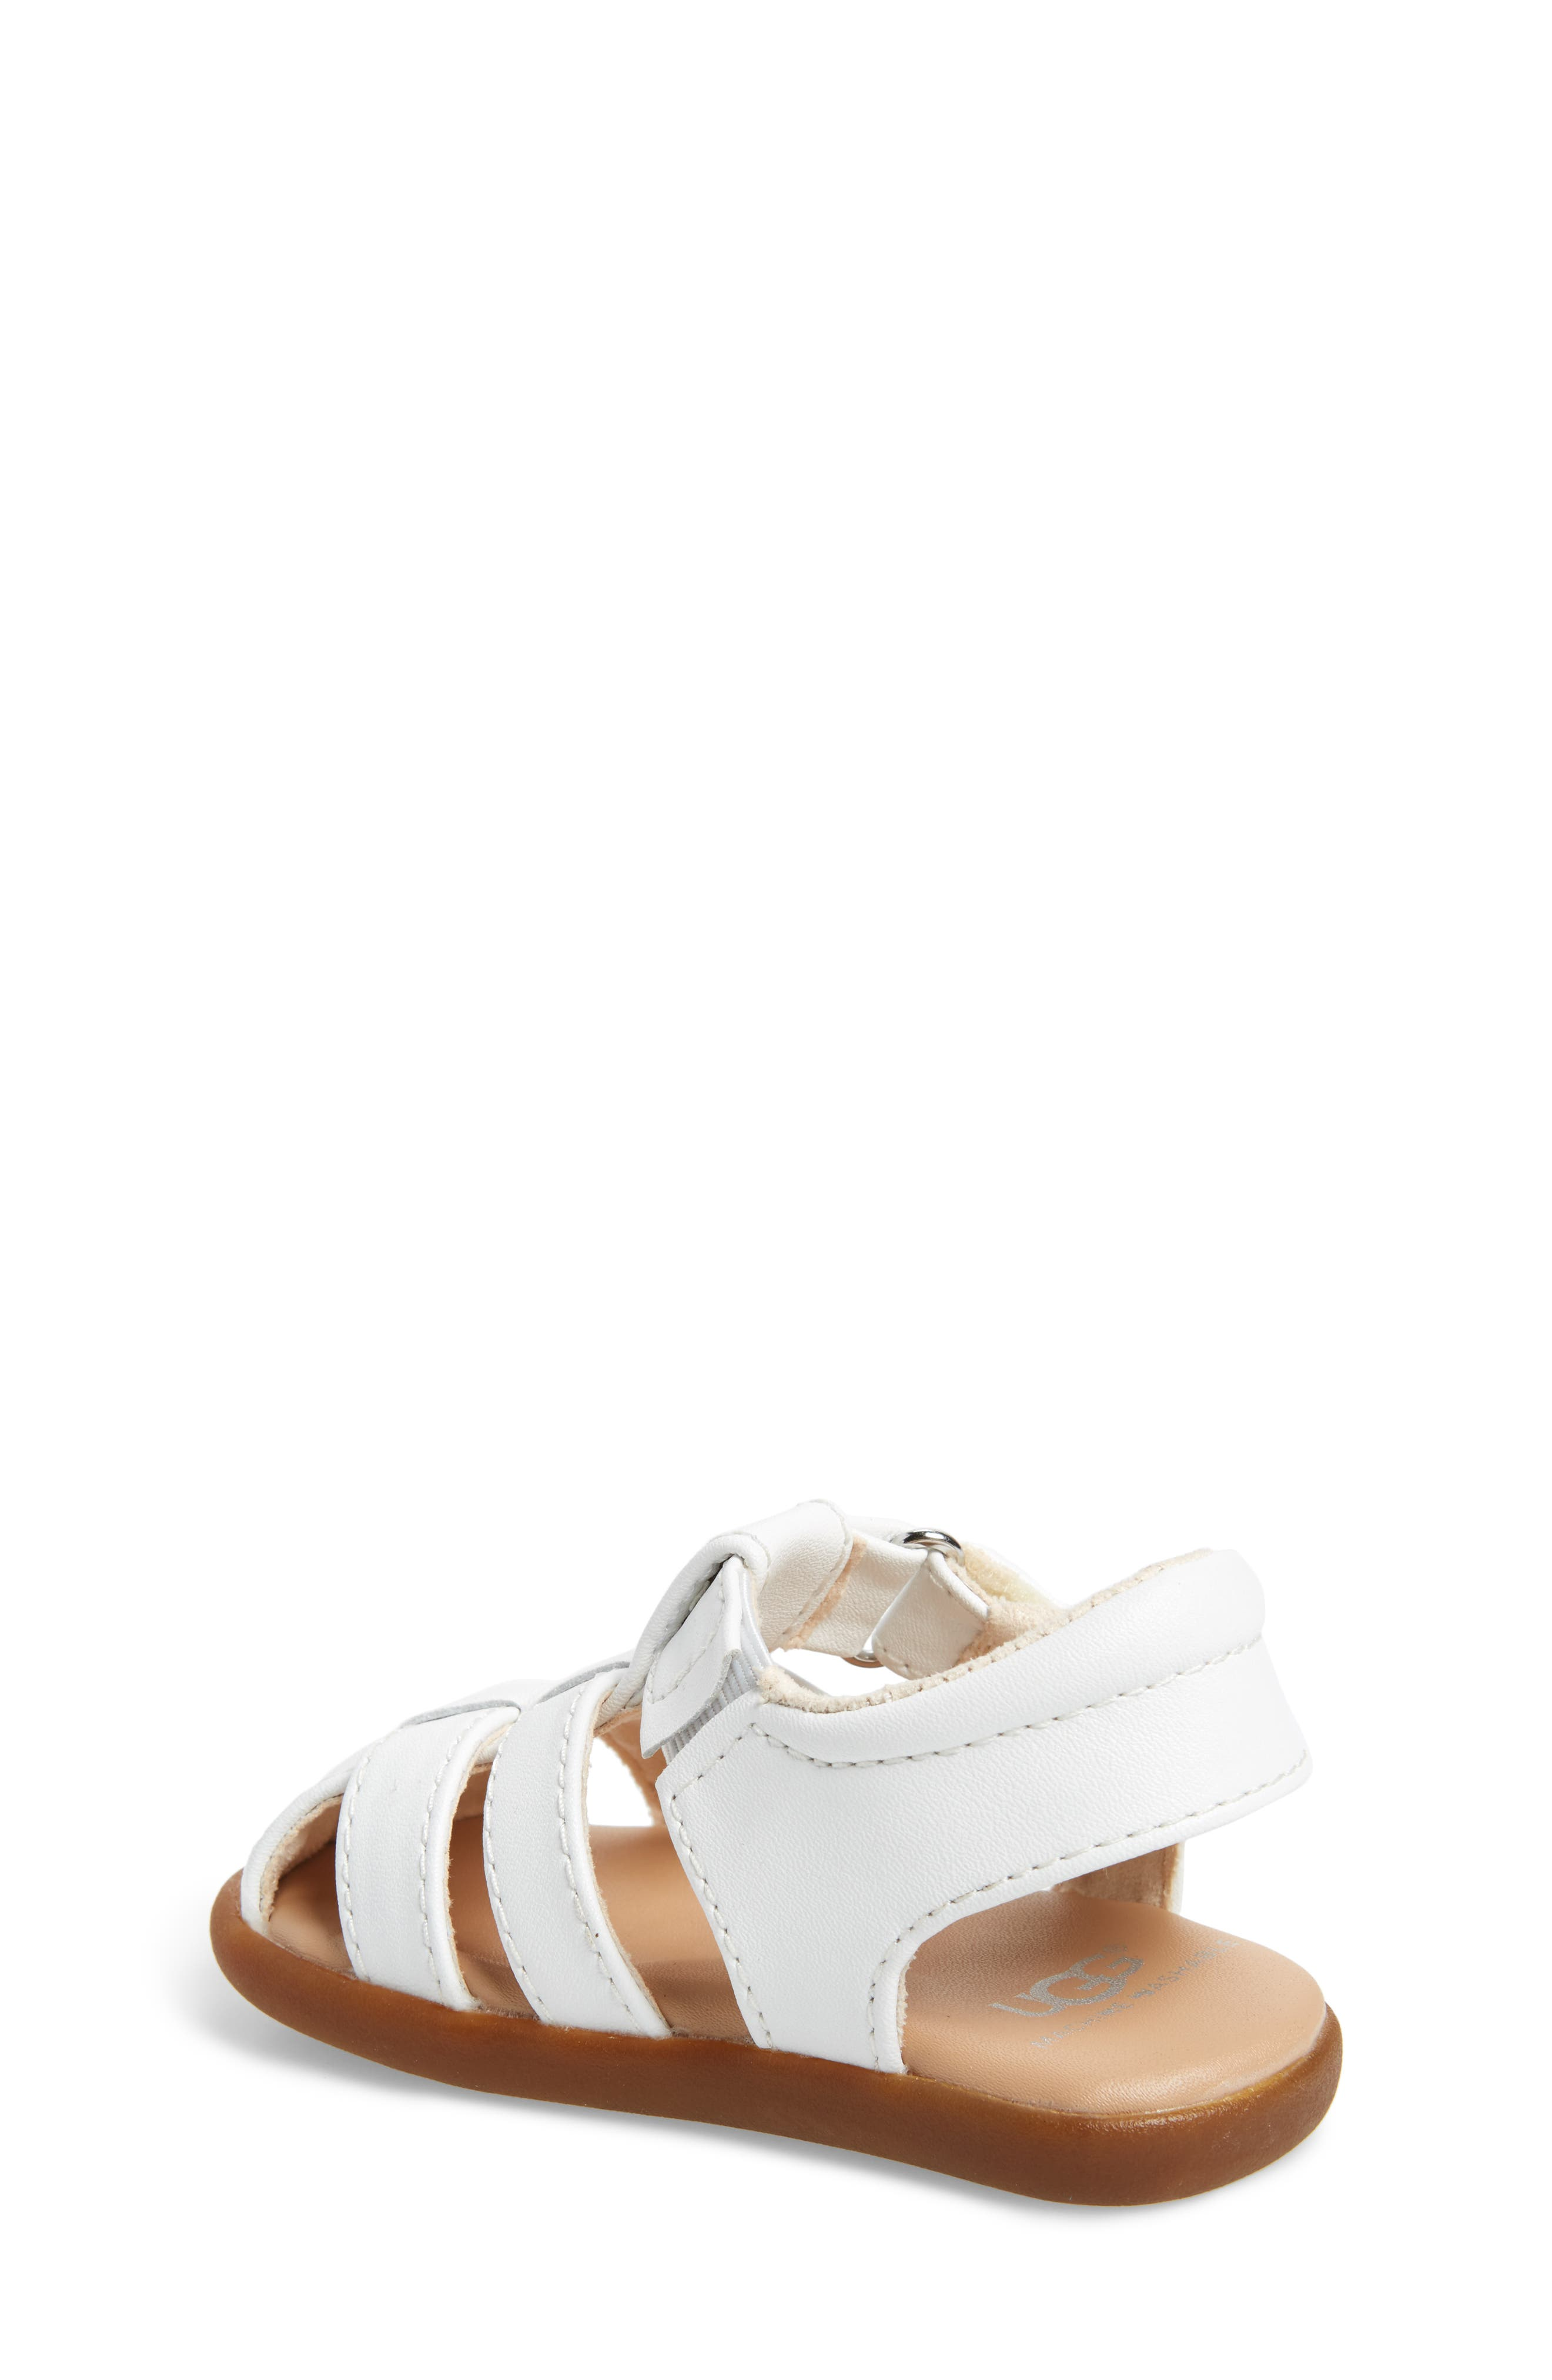 Kolding Fisherman Sandal,                             Alternate thumbnail 2, color,                             WHITE